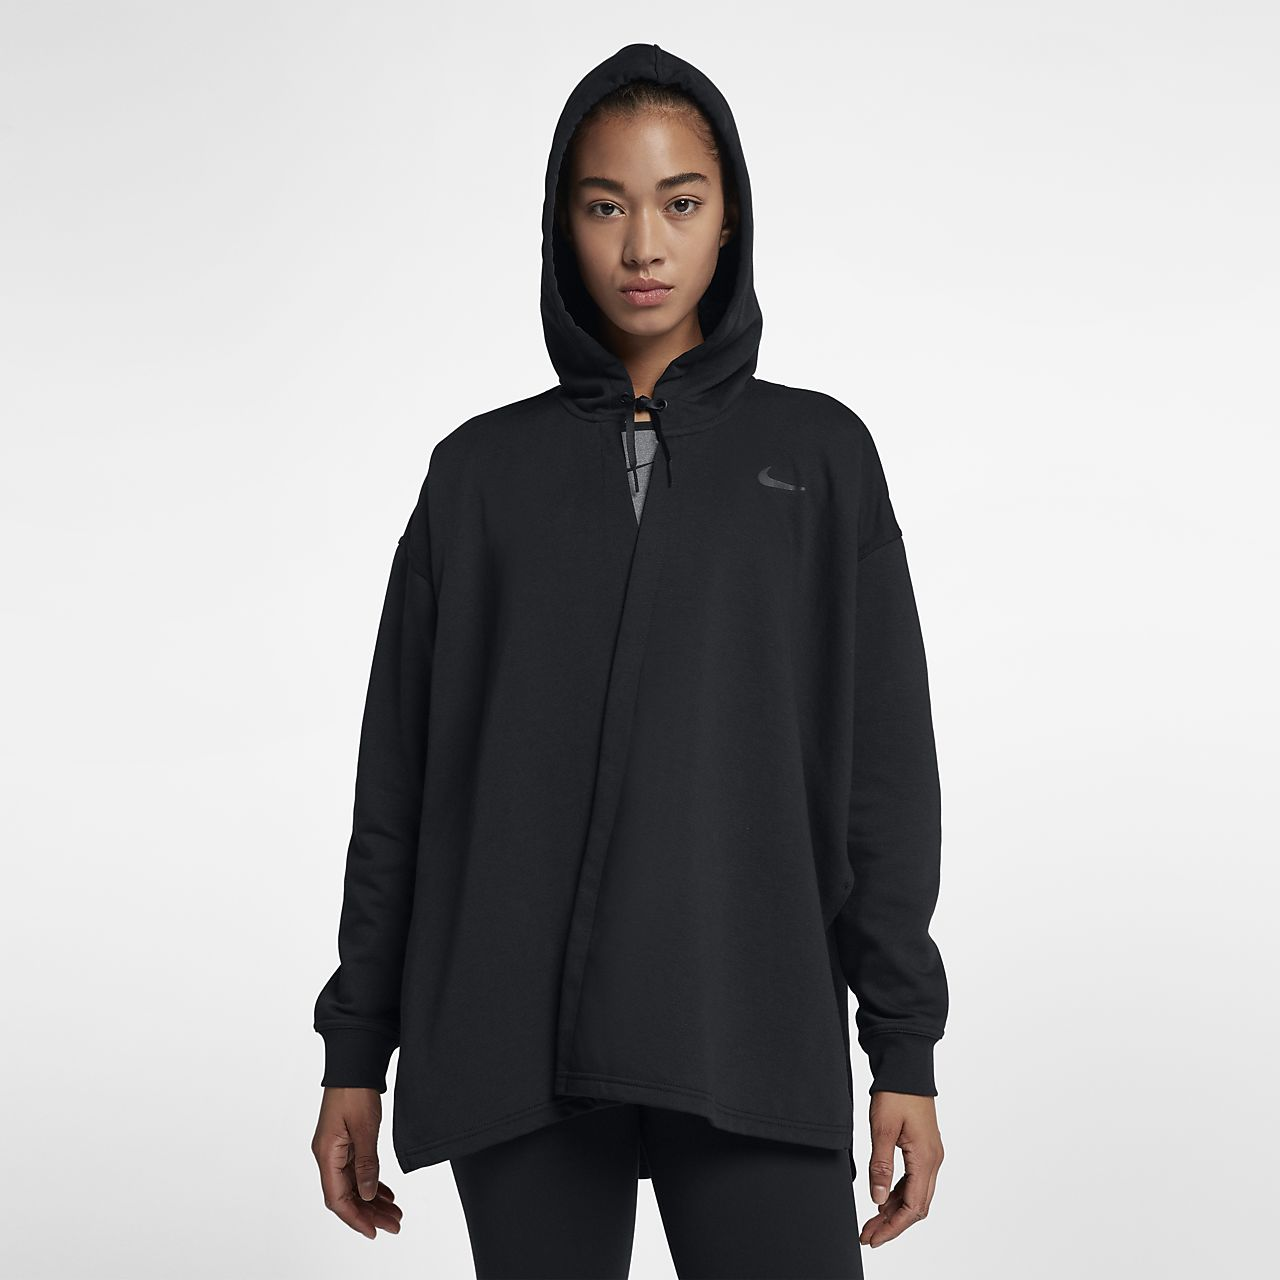 Nike Womens Hoodie - Nike Hurley Dri-FIT Fleece Pullover Black N44r9138